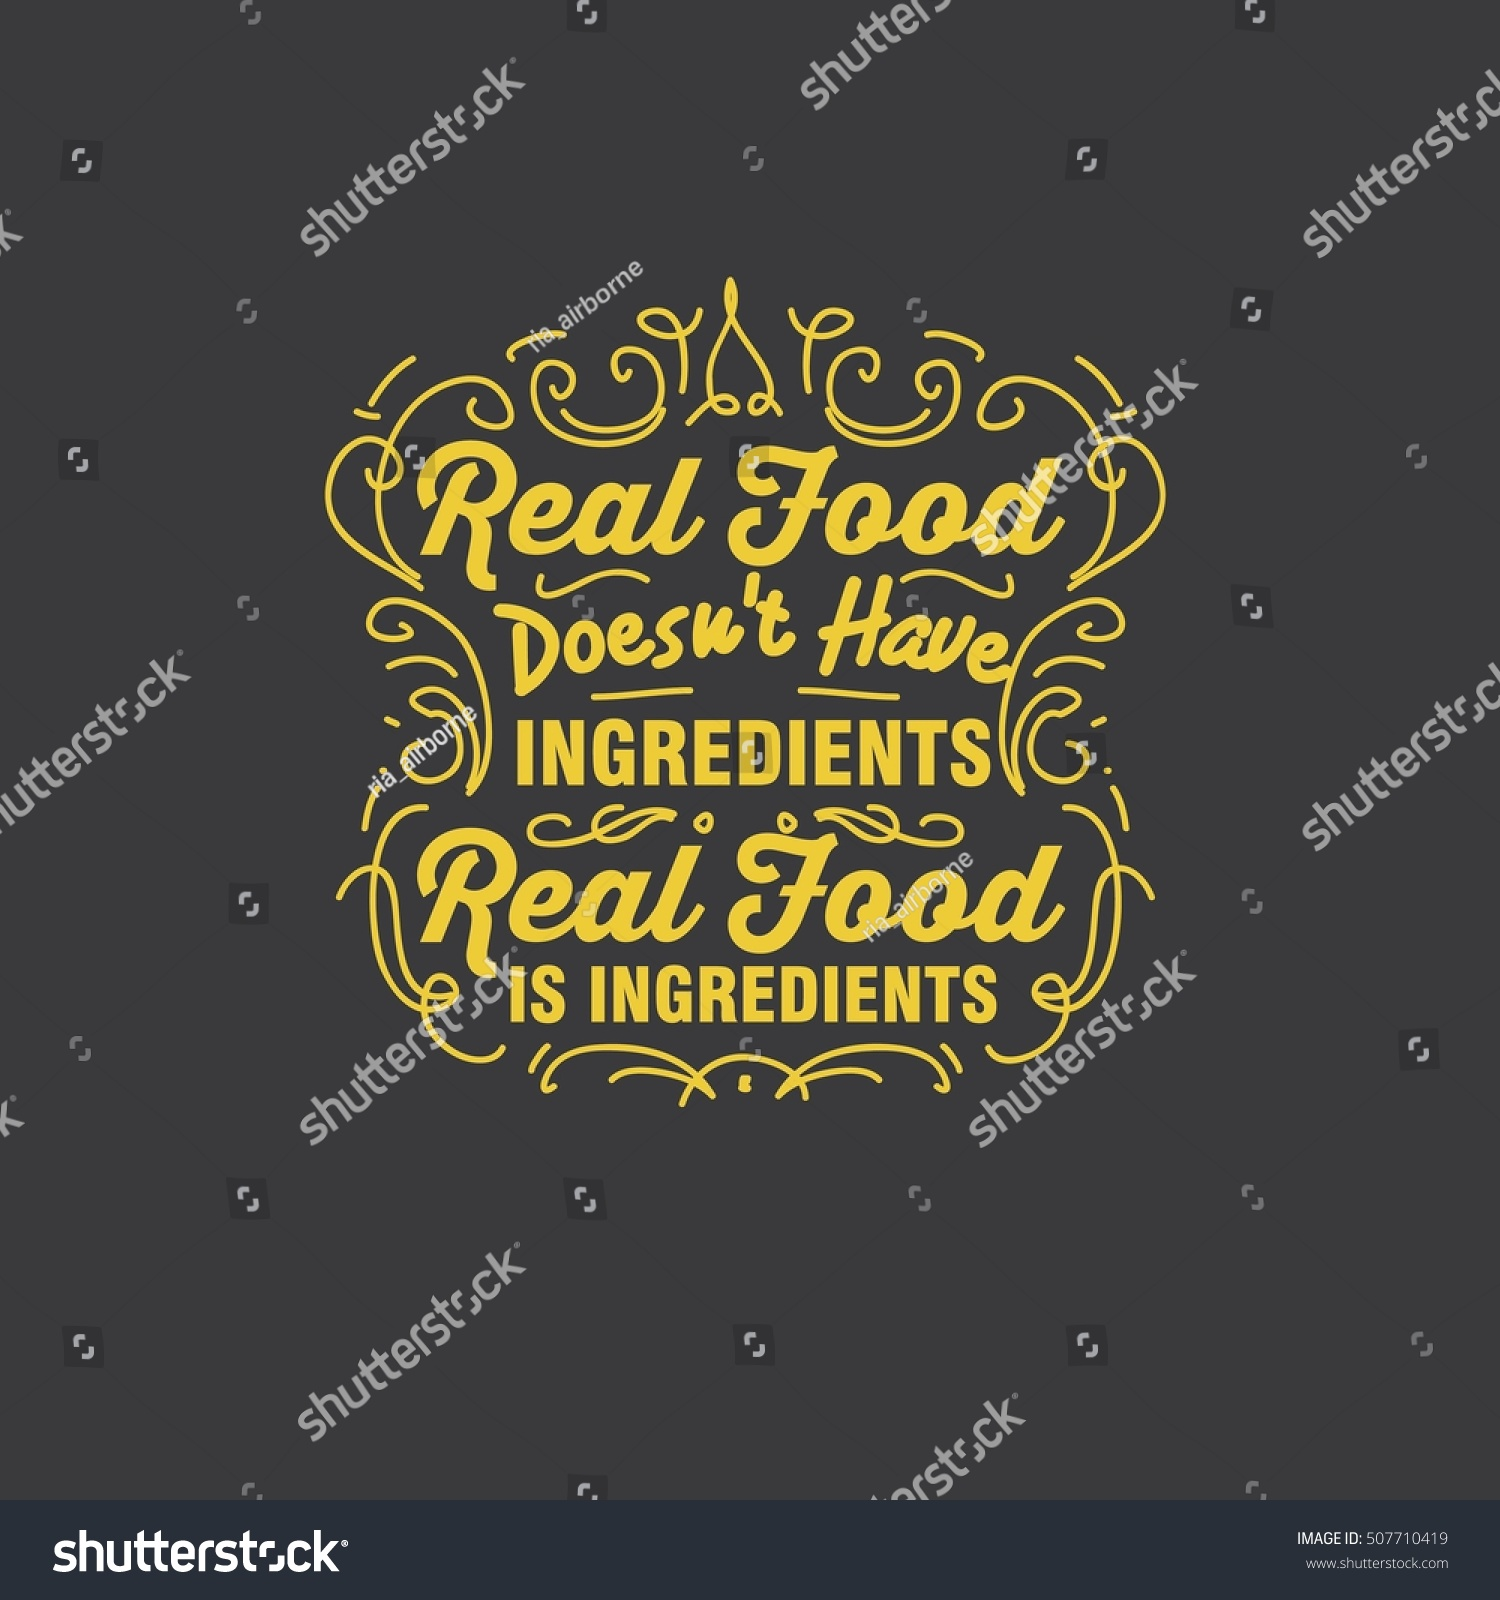 Good Health Quotes Health Quotes Good Food Quotes Stock Vector 507710419  Shutterstock